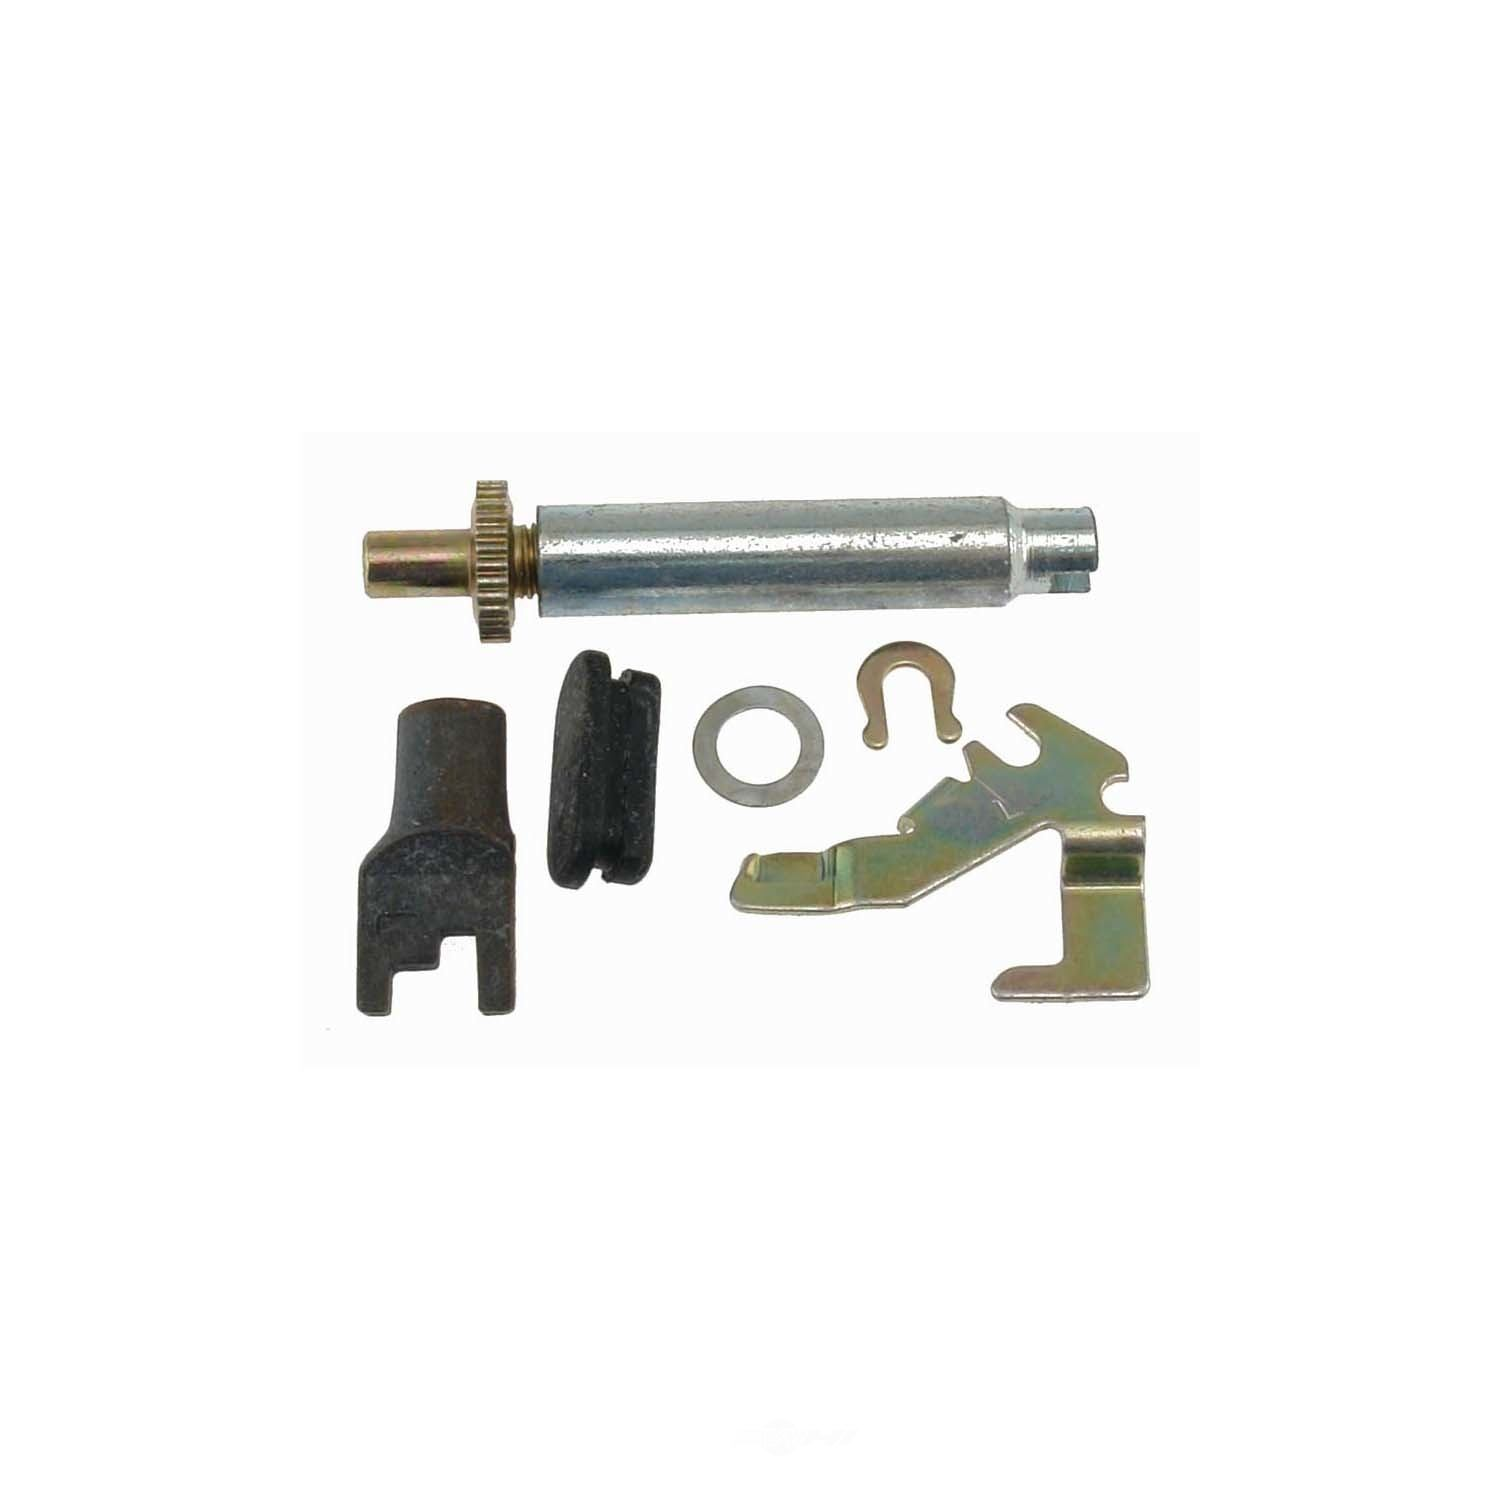 CARLSON QUALITY BRAKE PARTS - Drum Brake Self Adjuster Repair Kit (Rear Left) - CRL H2654